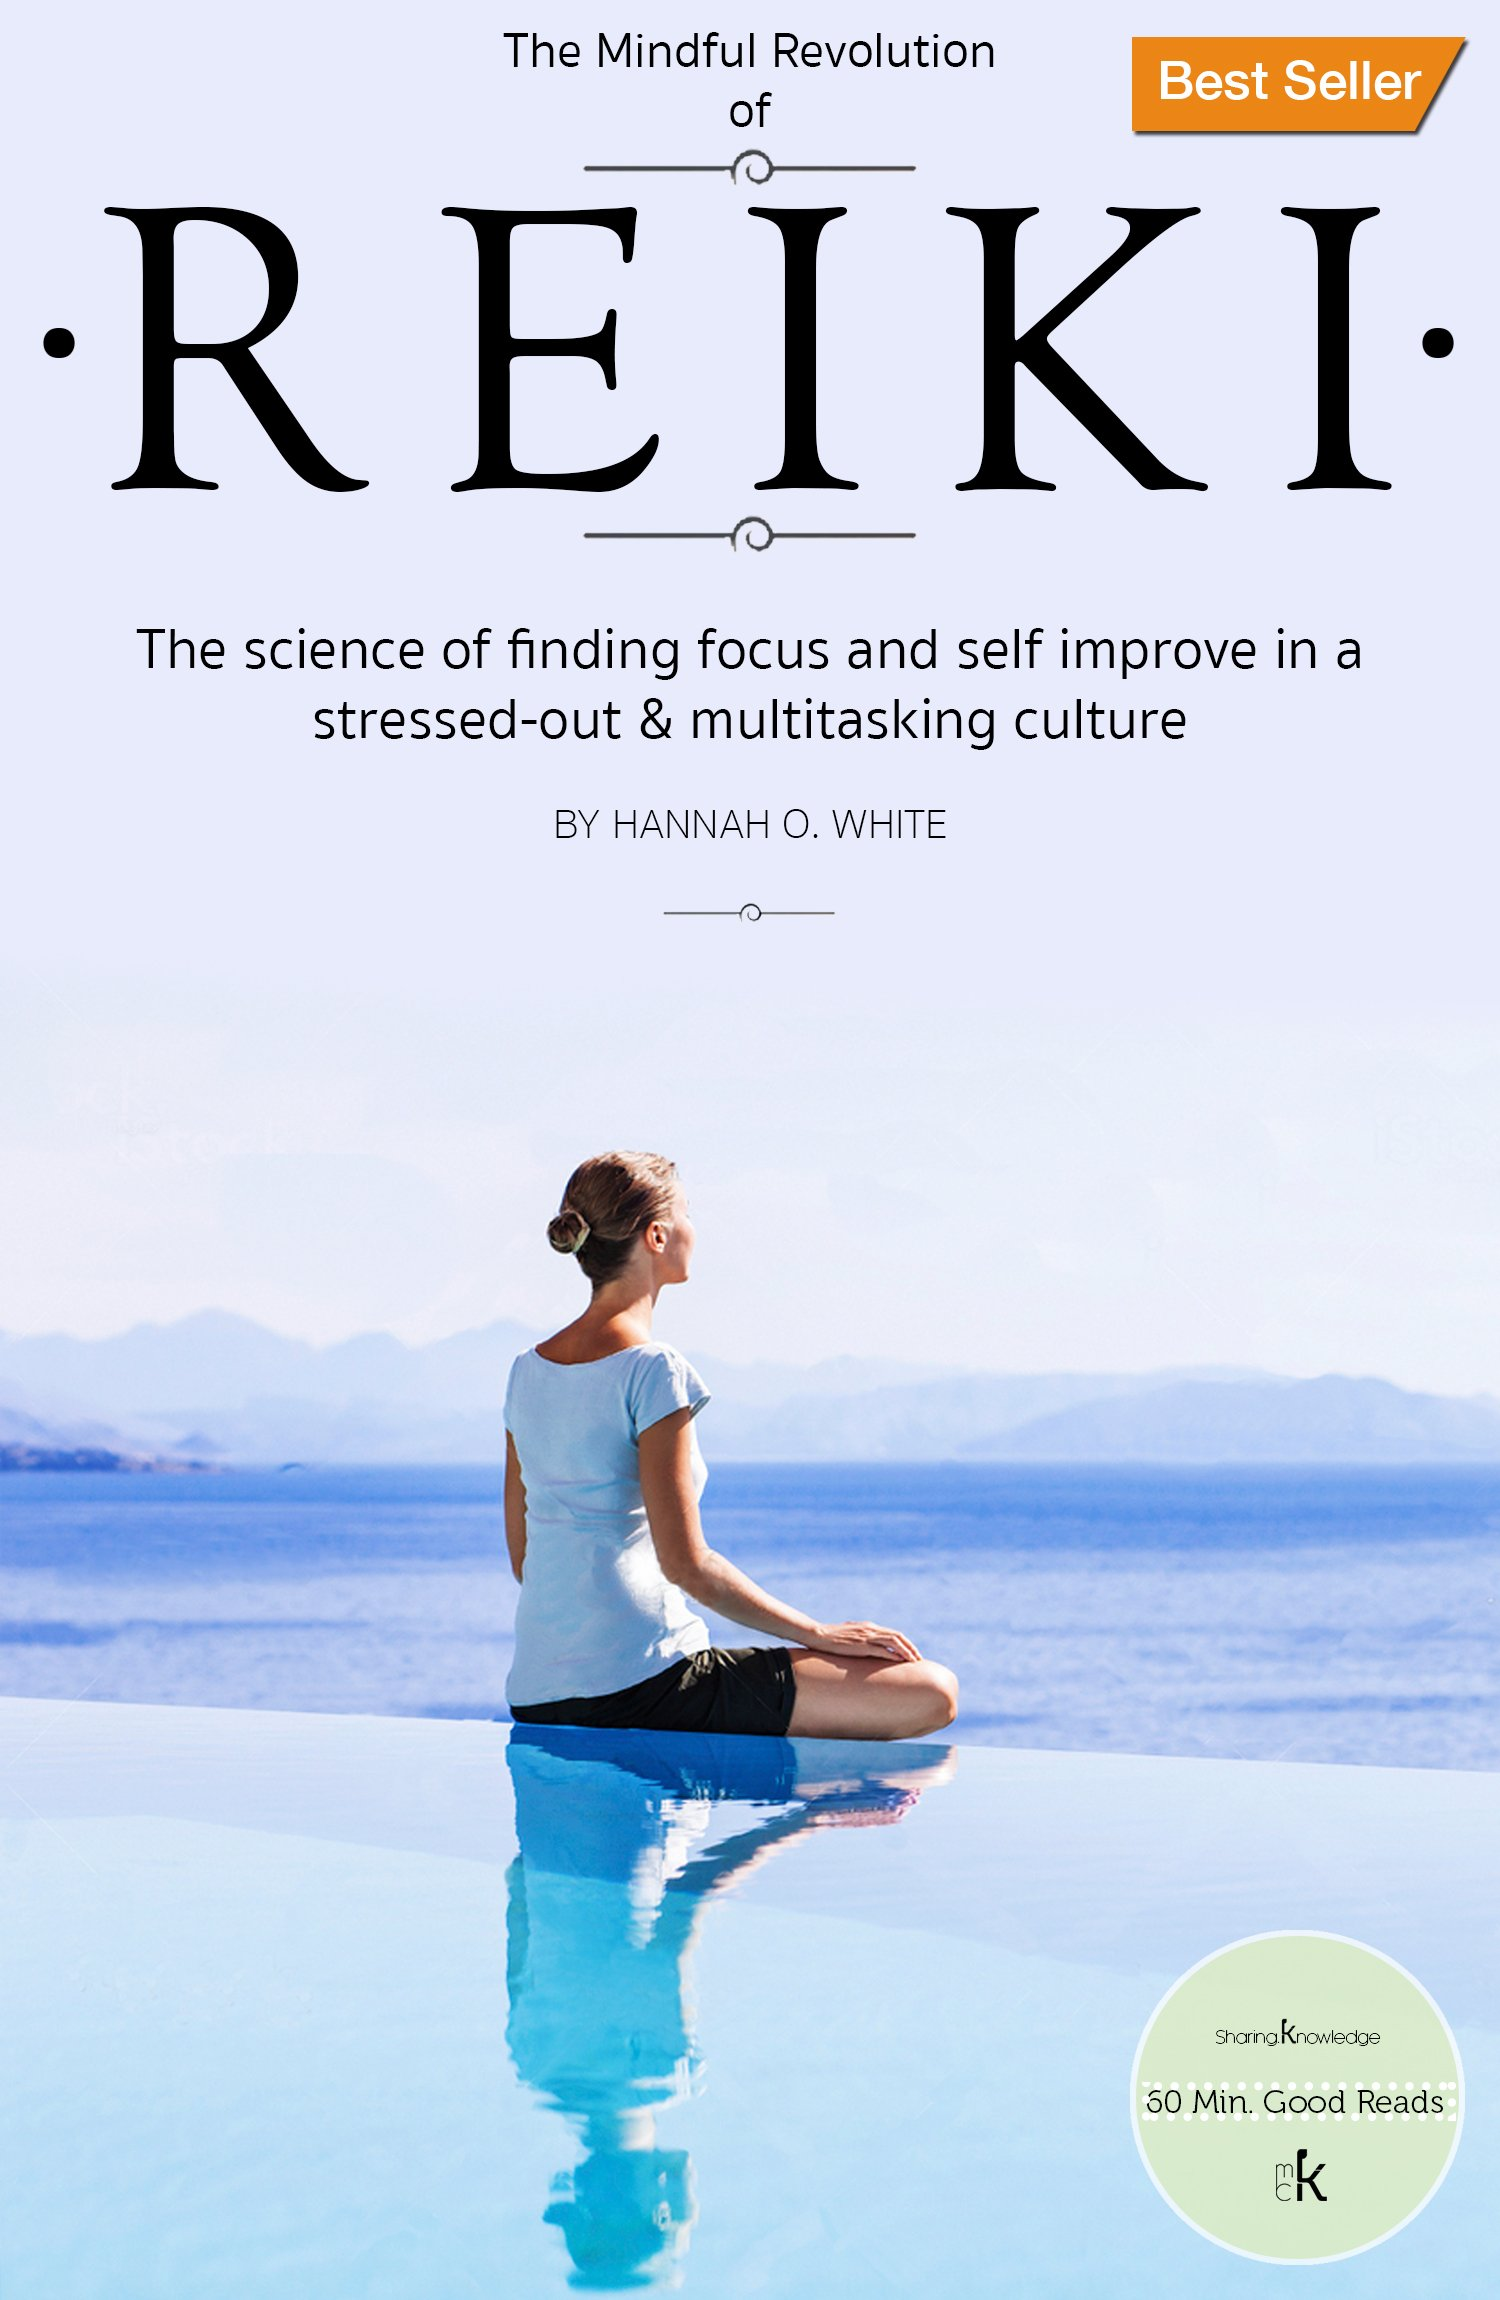 Reiki: A Complete Practical Guide to Natural Energy Healing How To - Awake Your Body And Soul Restore Your Health And Vitality. (Reiki For Beginners ... Awaken Your Chackras) (English Edition)